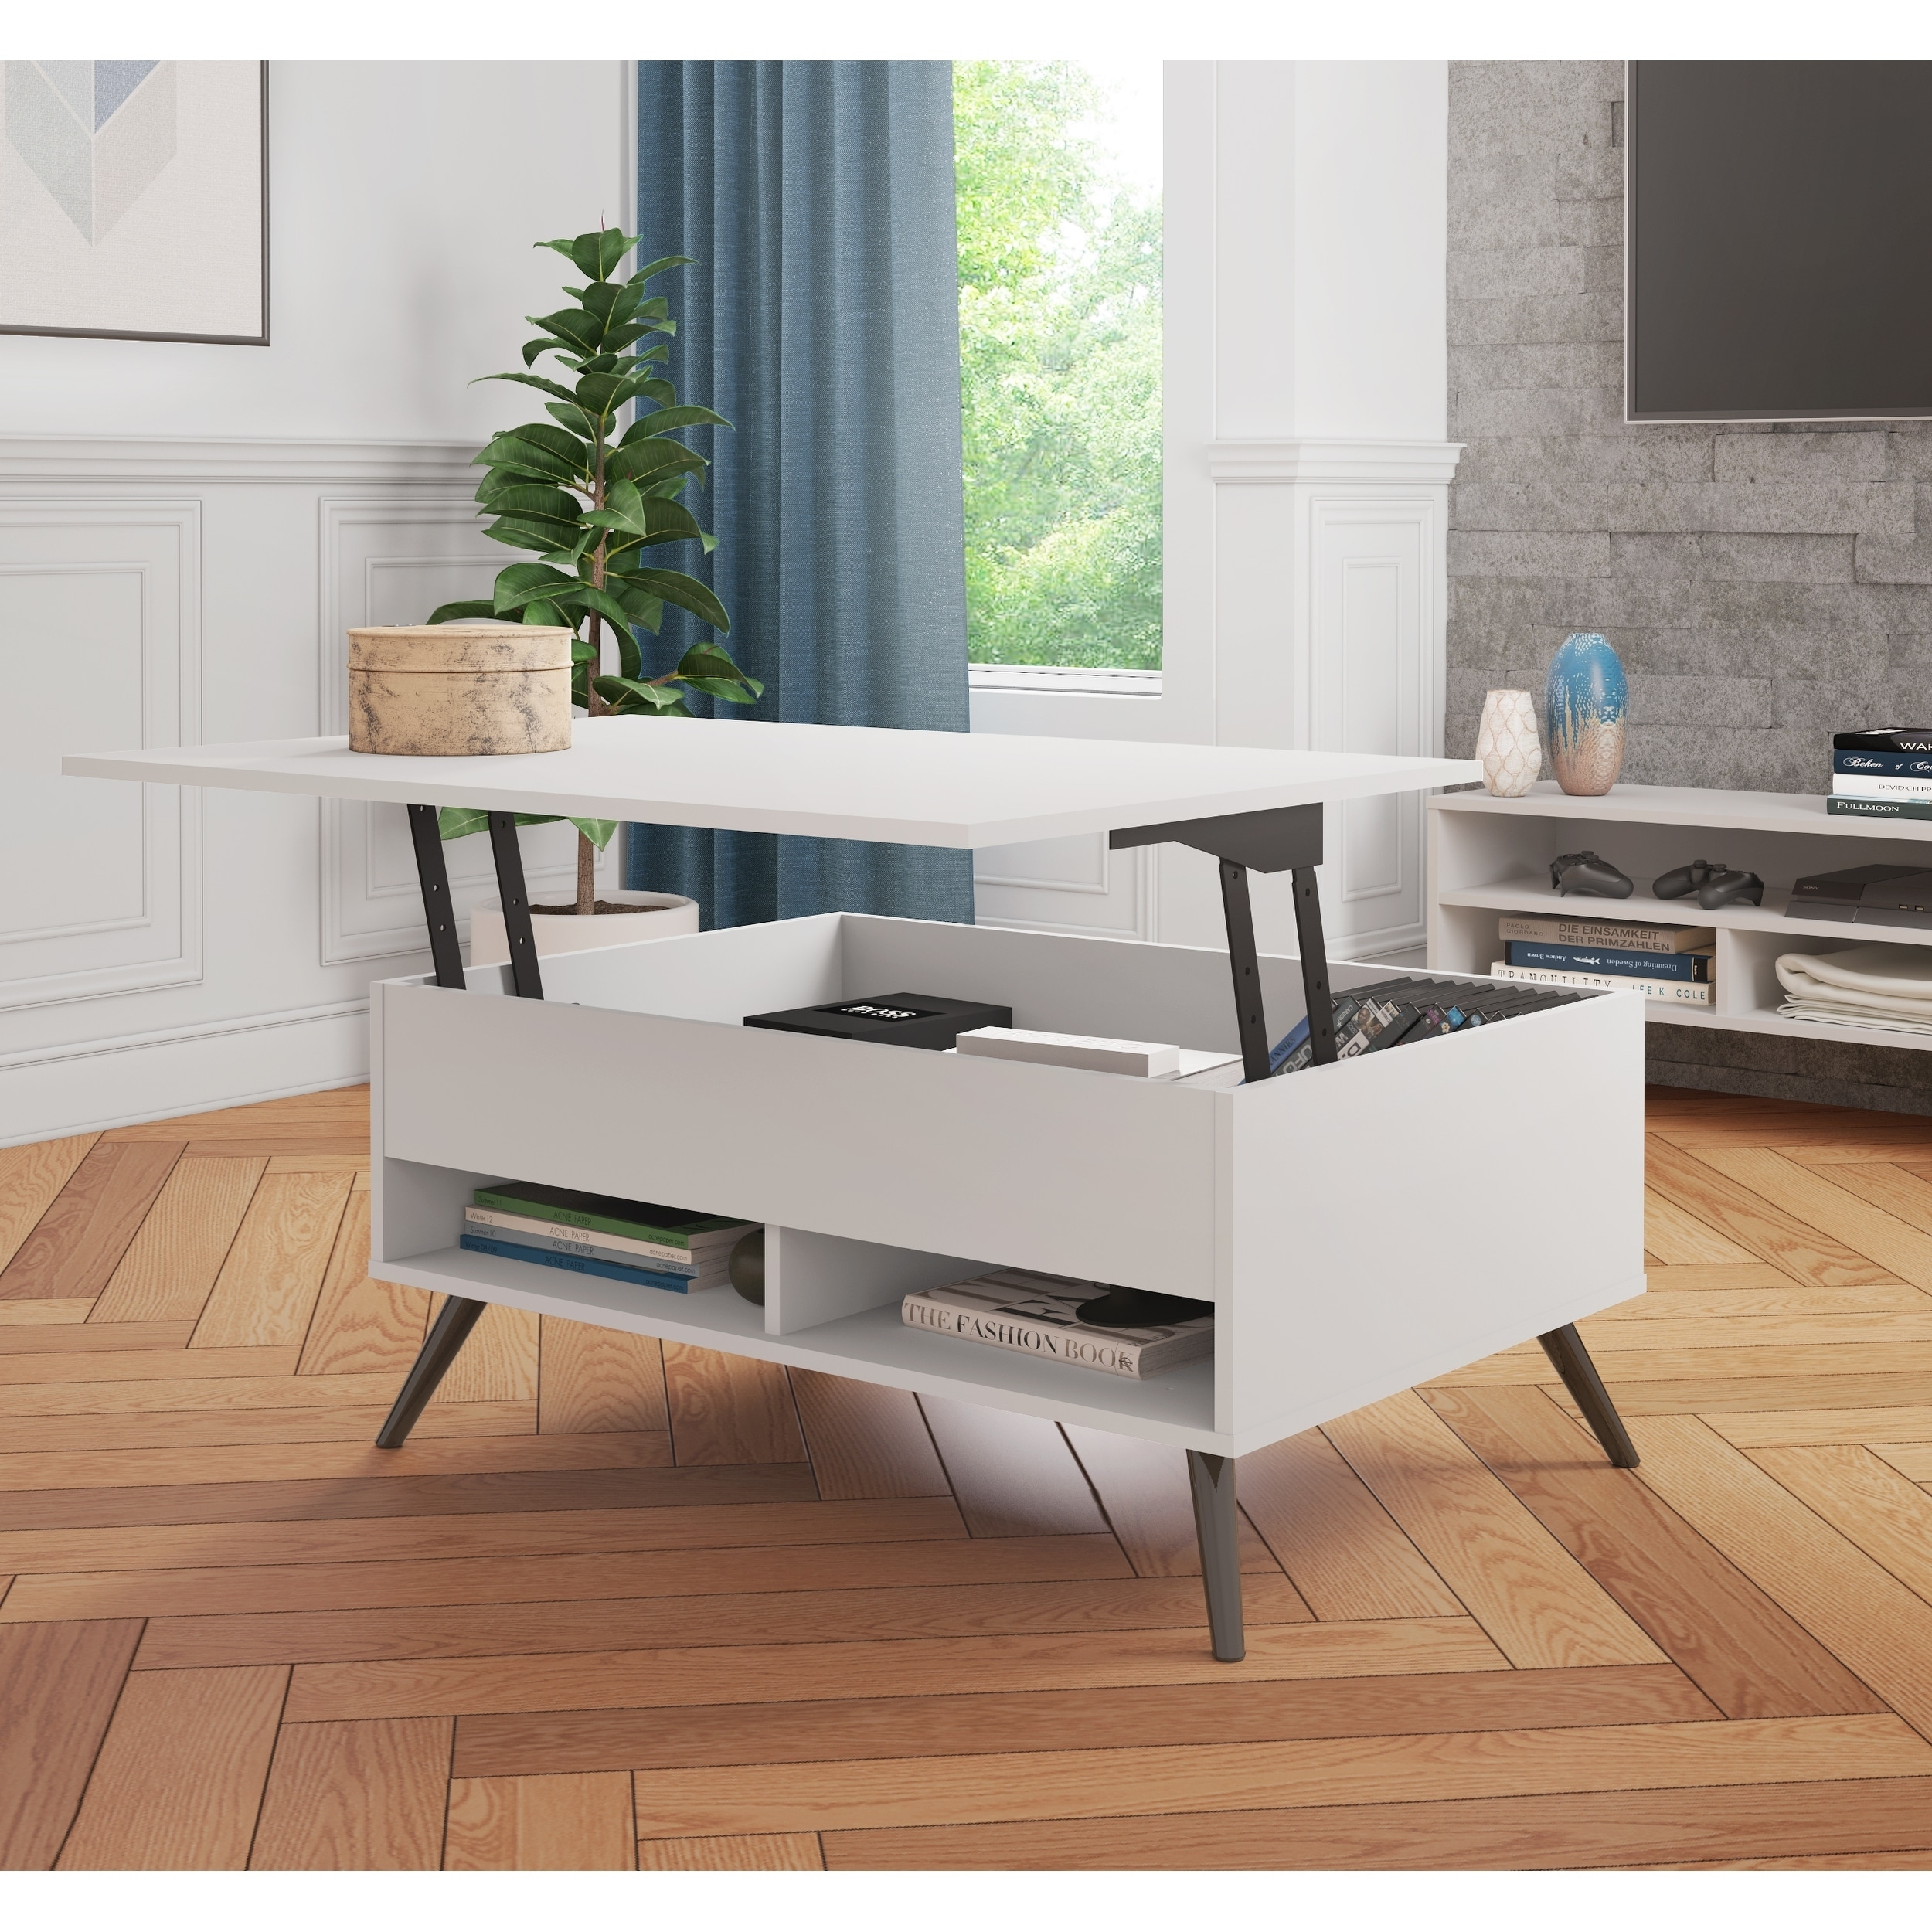 Surprising Bestar Small Space Krom 37 Inch Lift Top Storage Coffee Table Caraccident5 Cool Chair Designs And Ideas Caraccident5Info